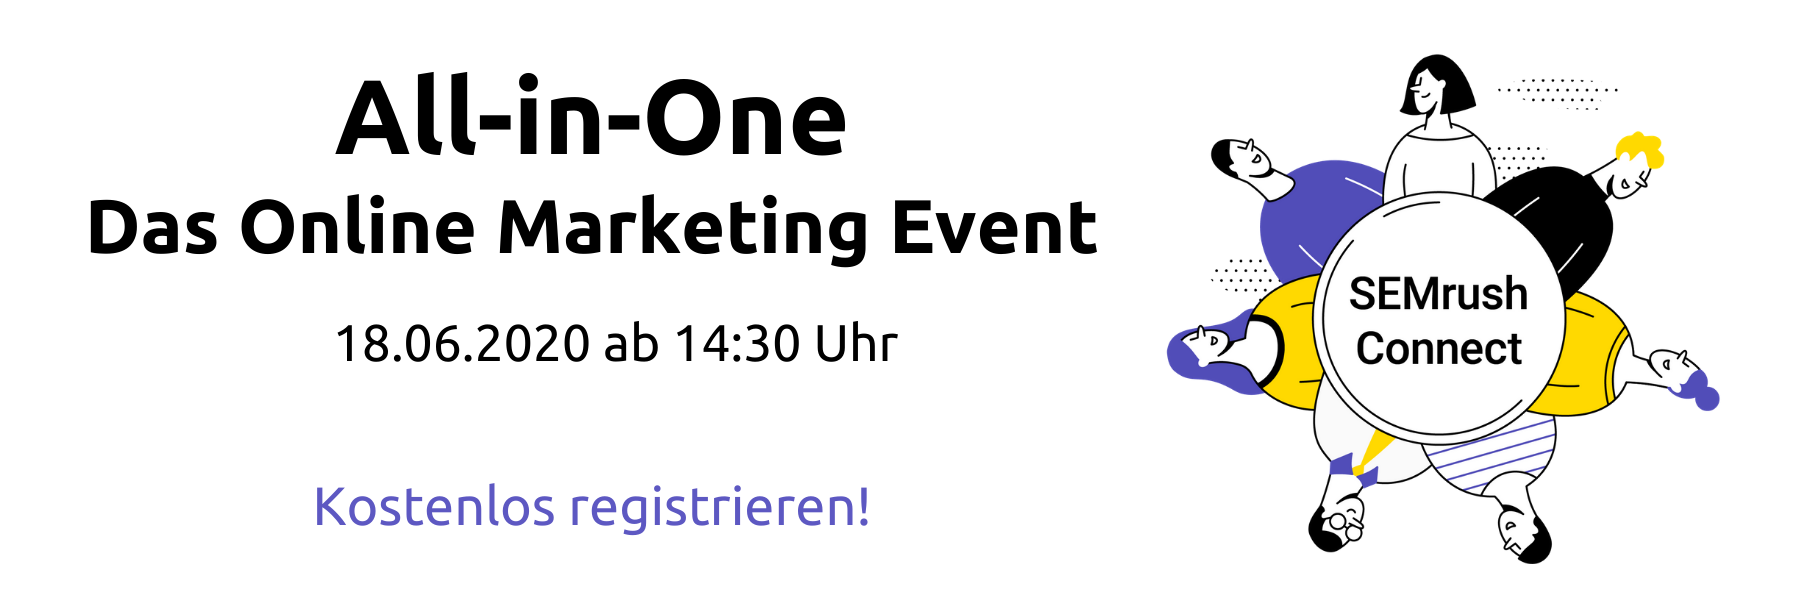 Anmeldung Online Marketing Event Semrush